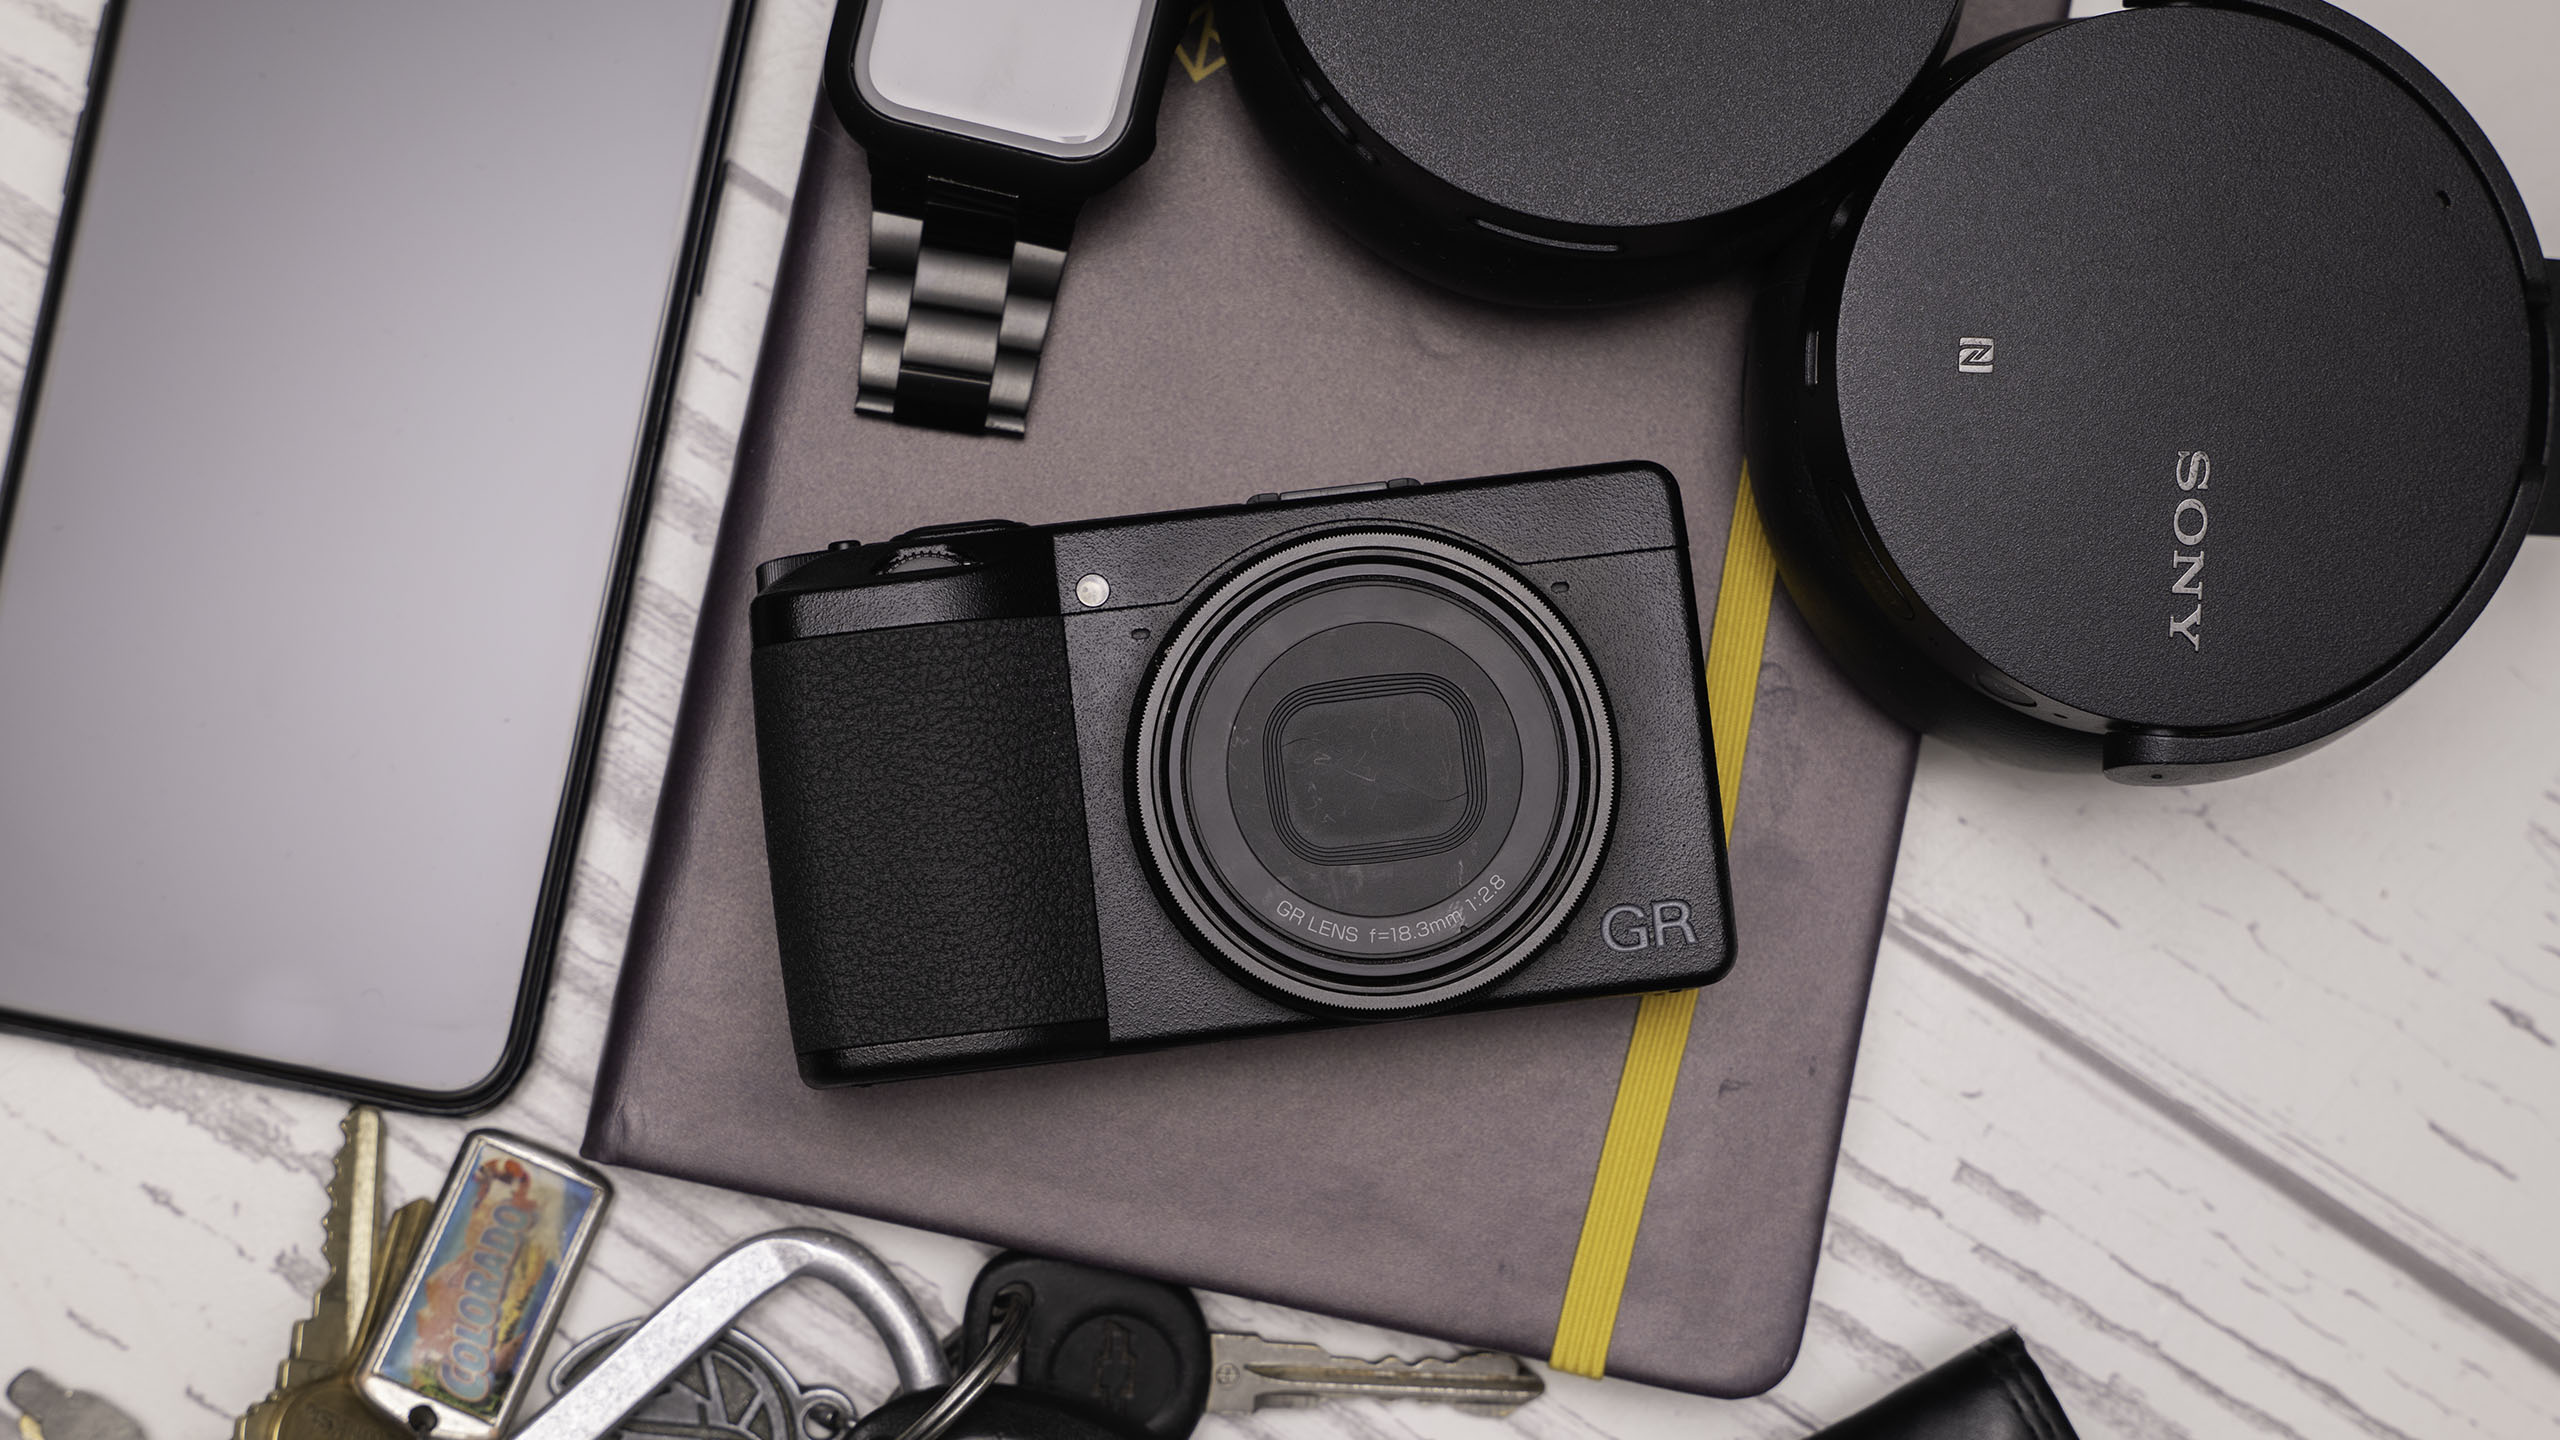 The Ricoh GR III keeps the same minimalist design we have come to love.